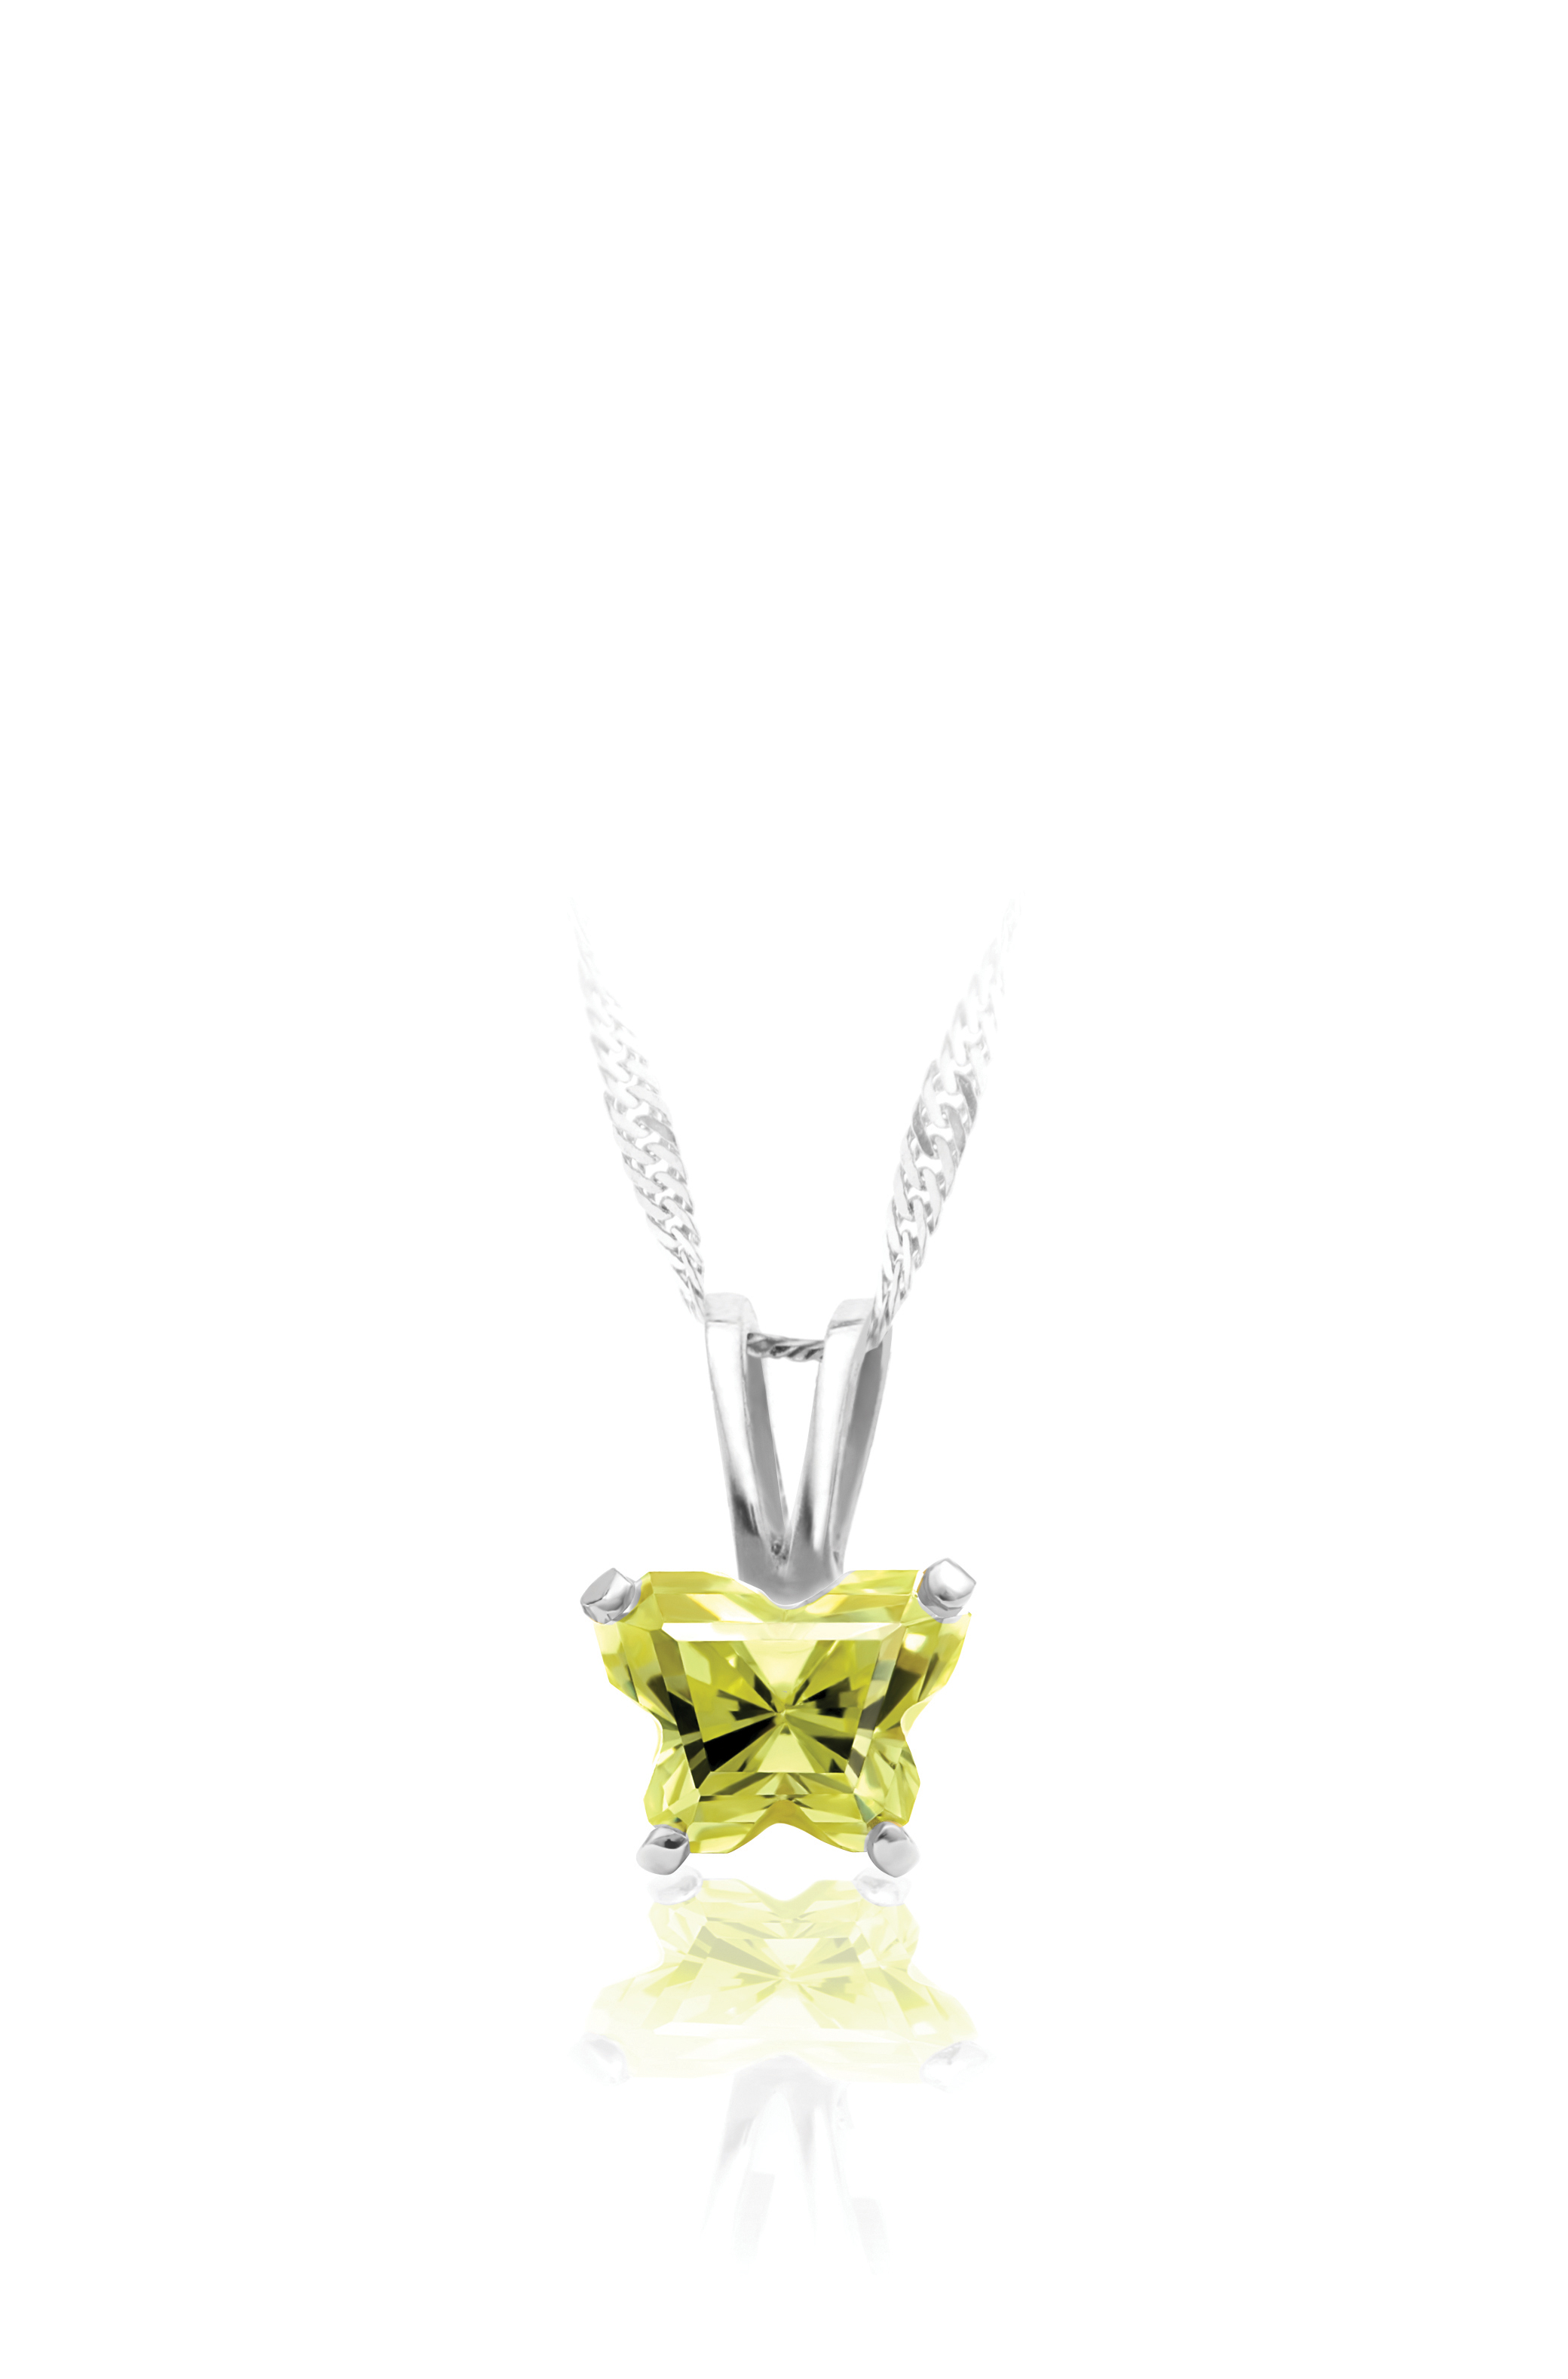 pendant for babies in sterling silver with lime green cubic zirconia (month of August) - Chain included